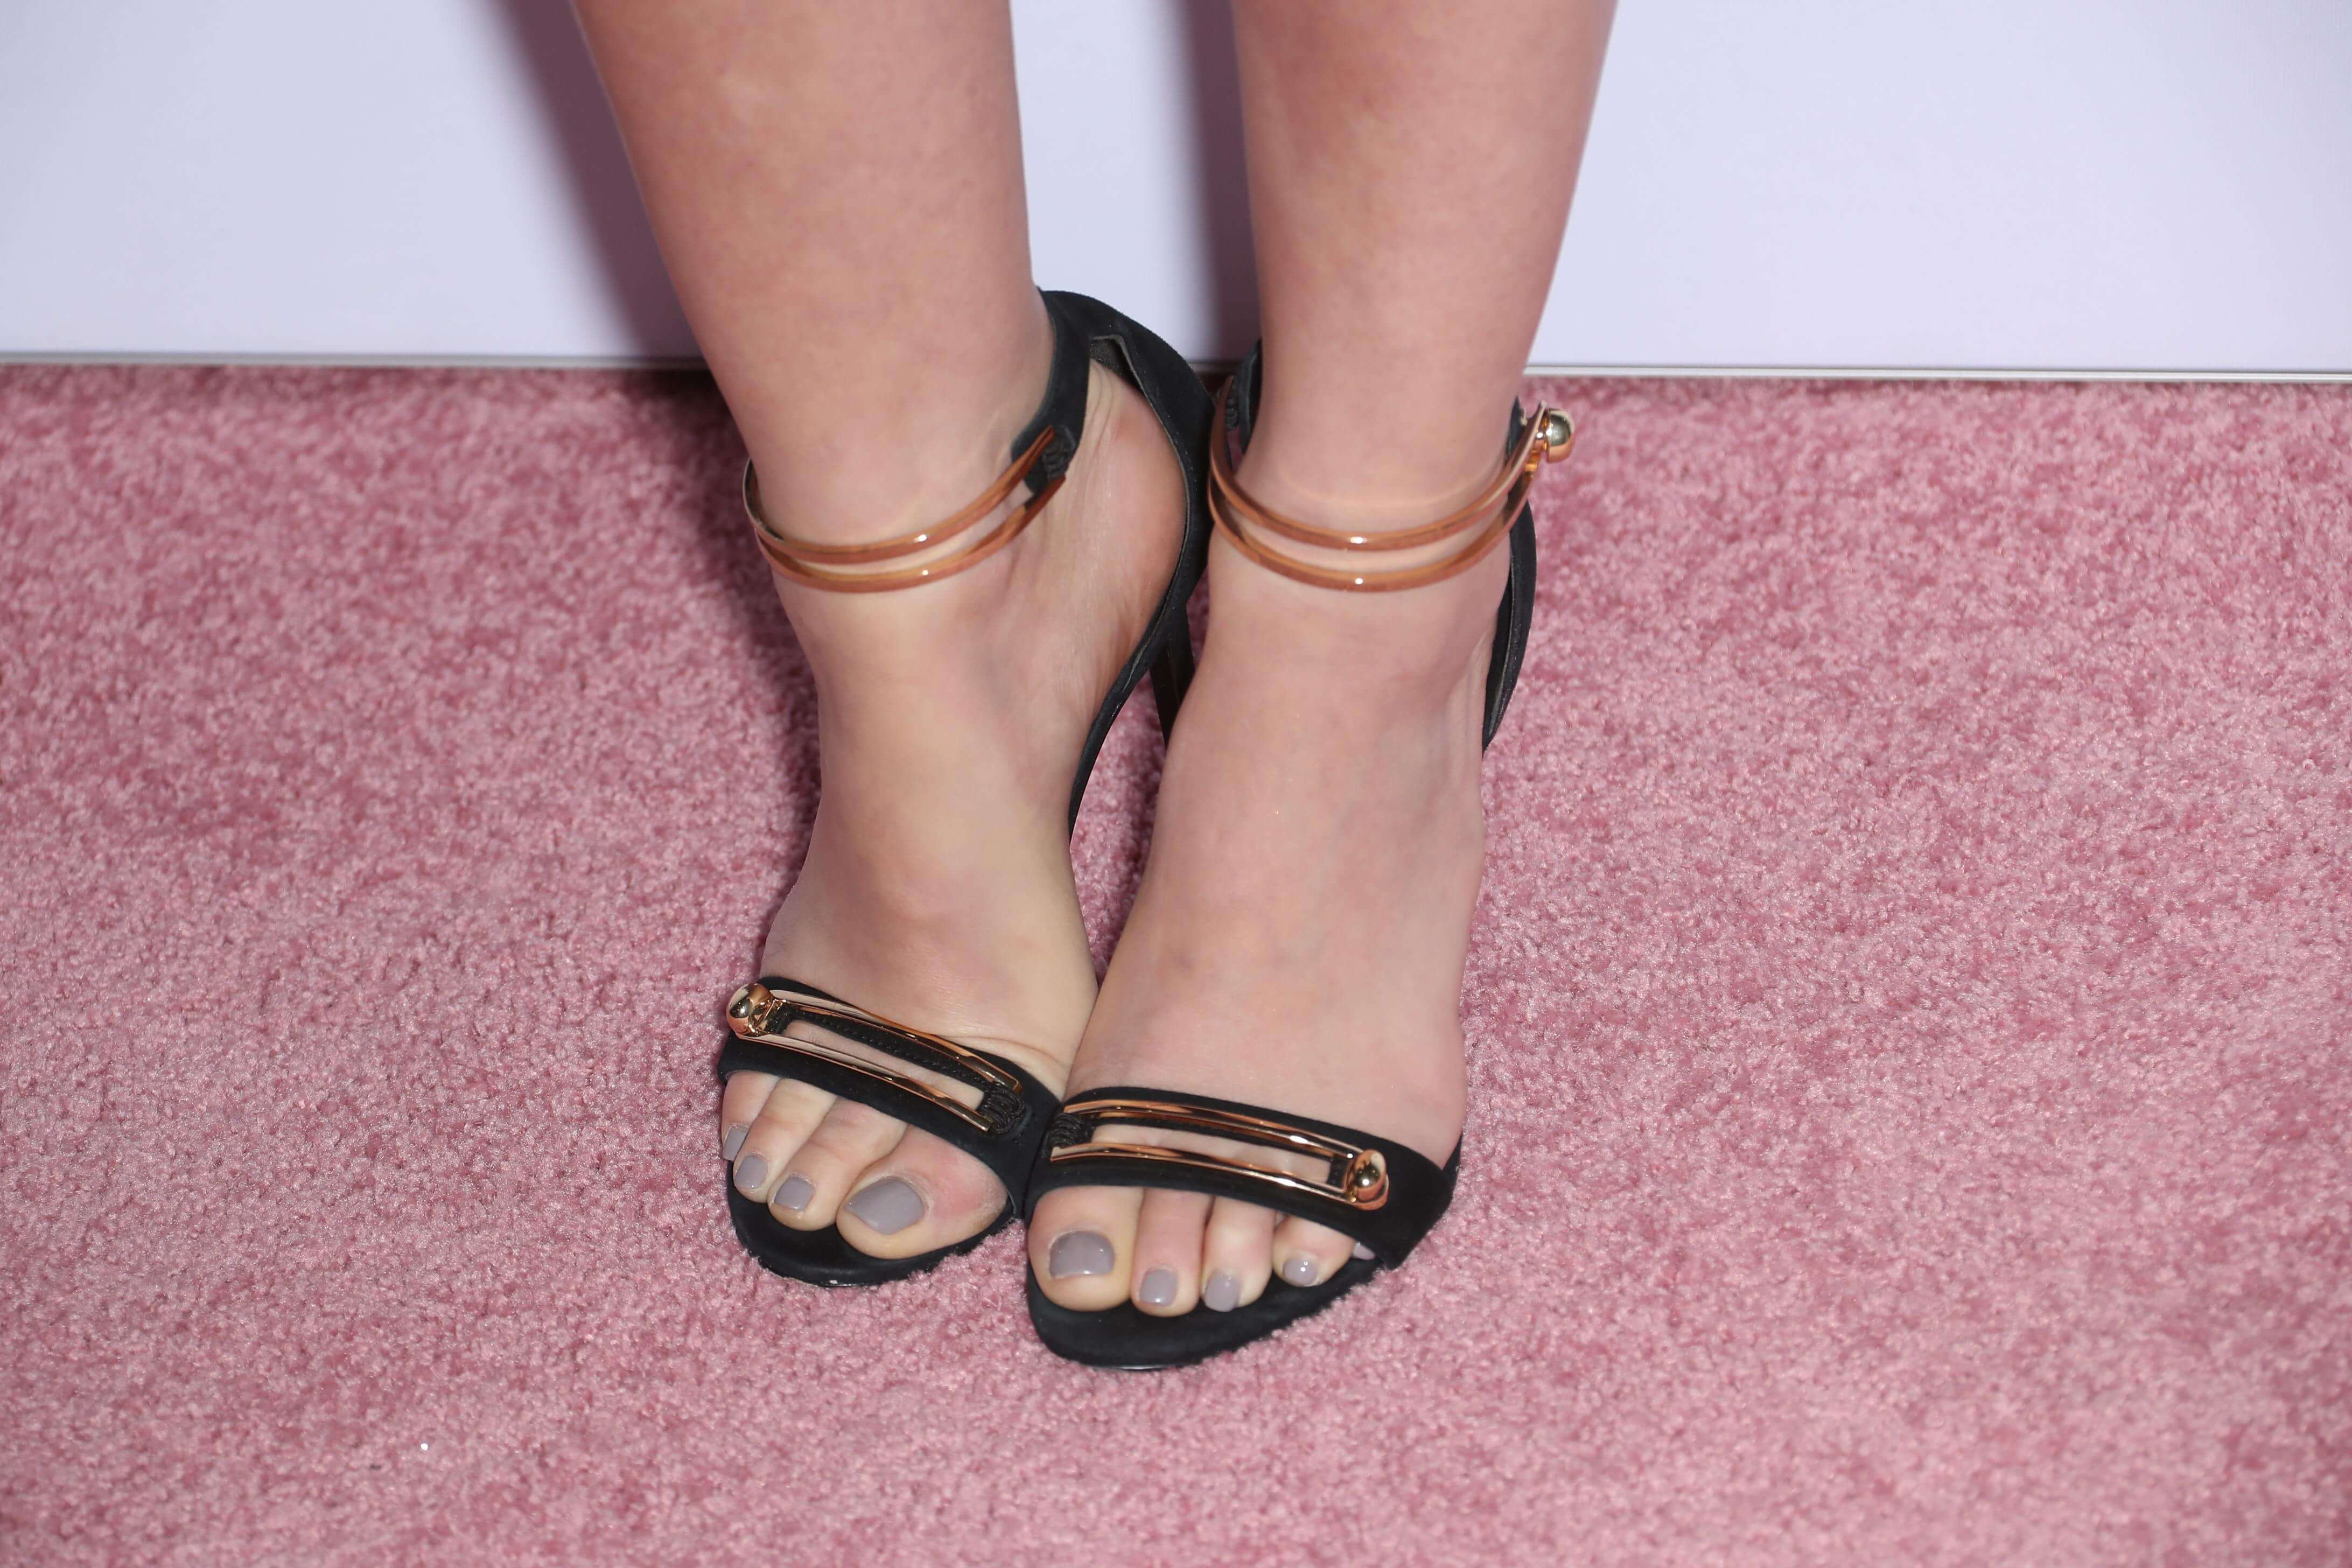 Richie lucy daily feet